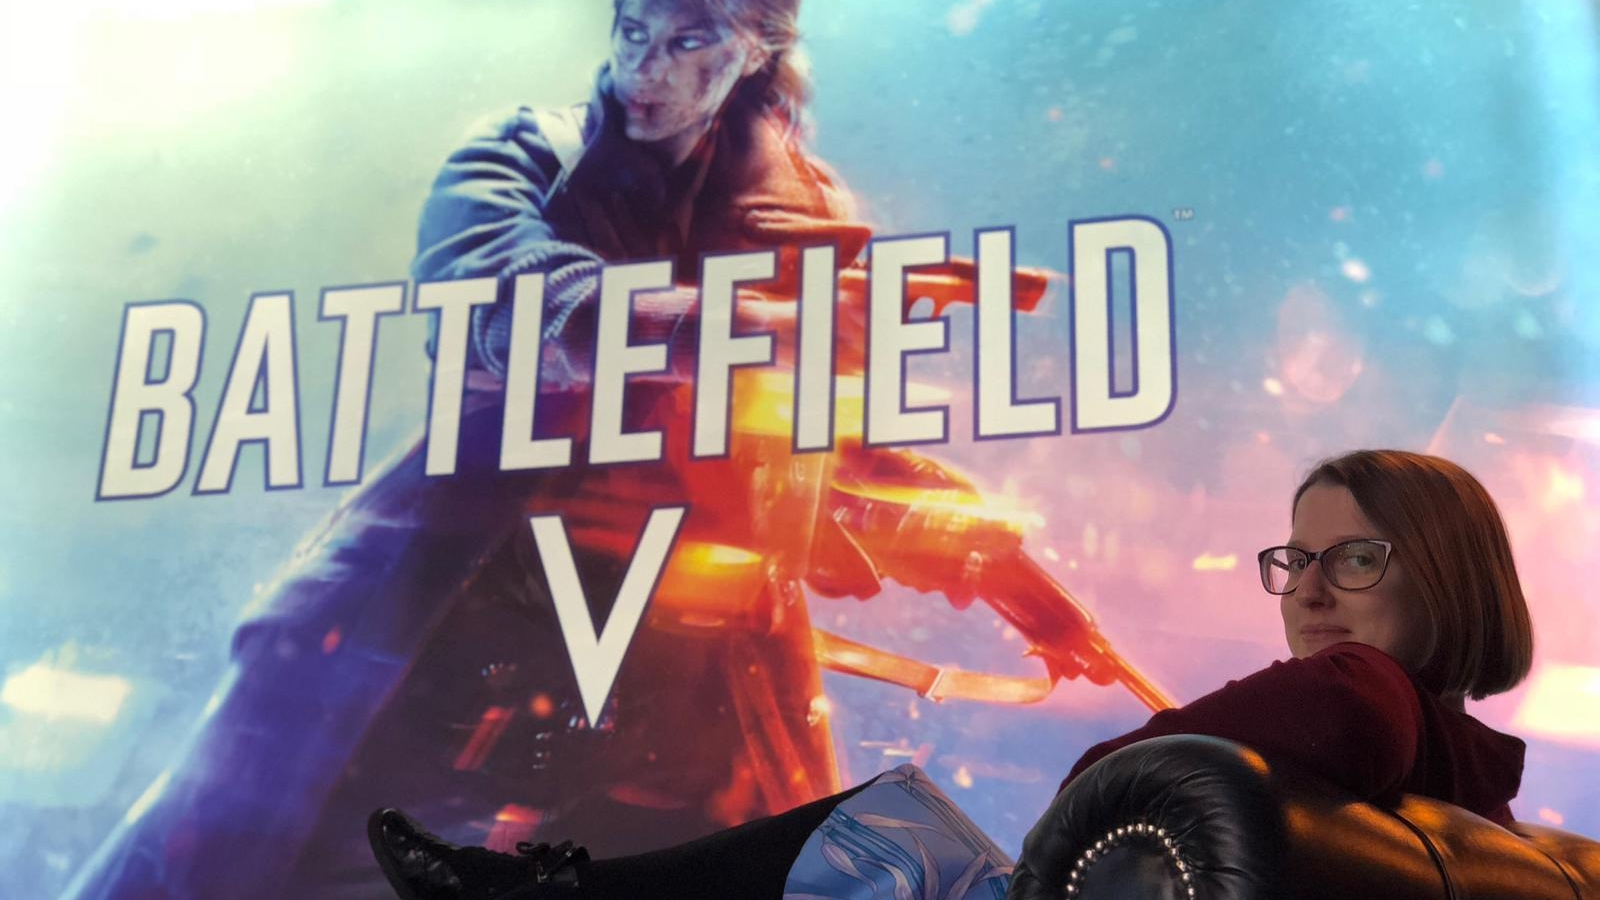 Episode 8: Battlefield V